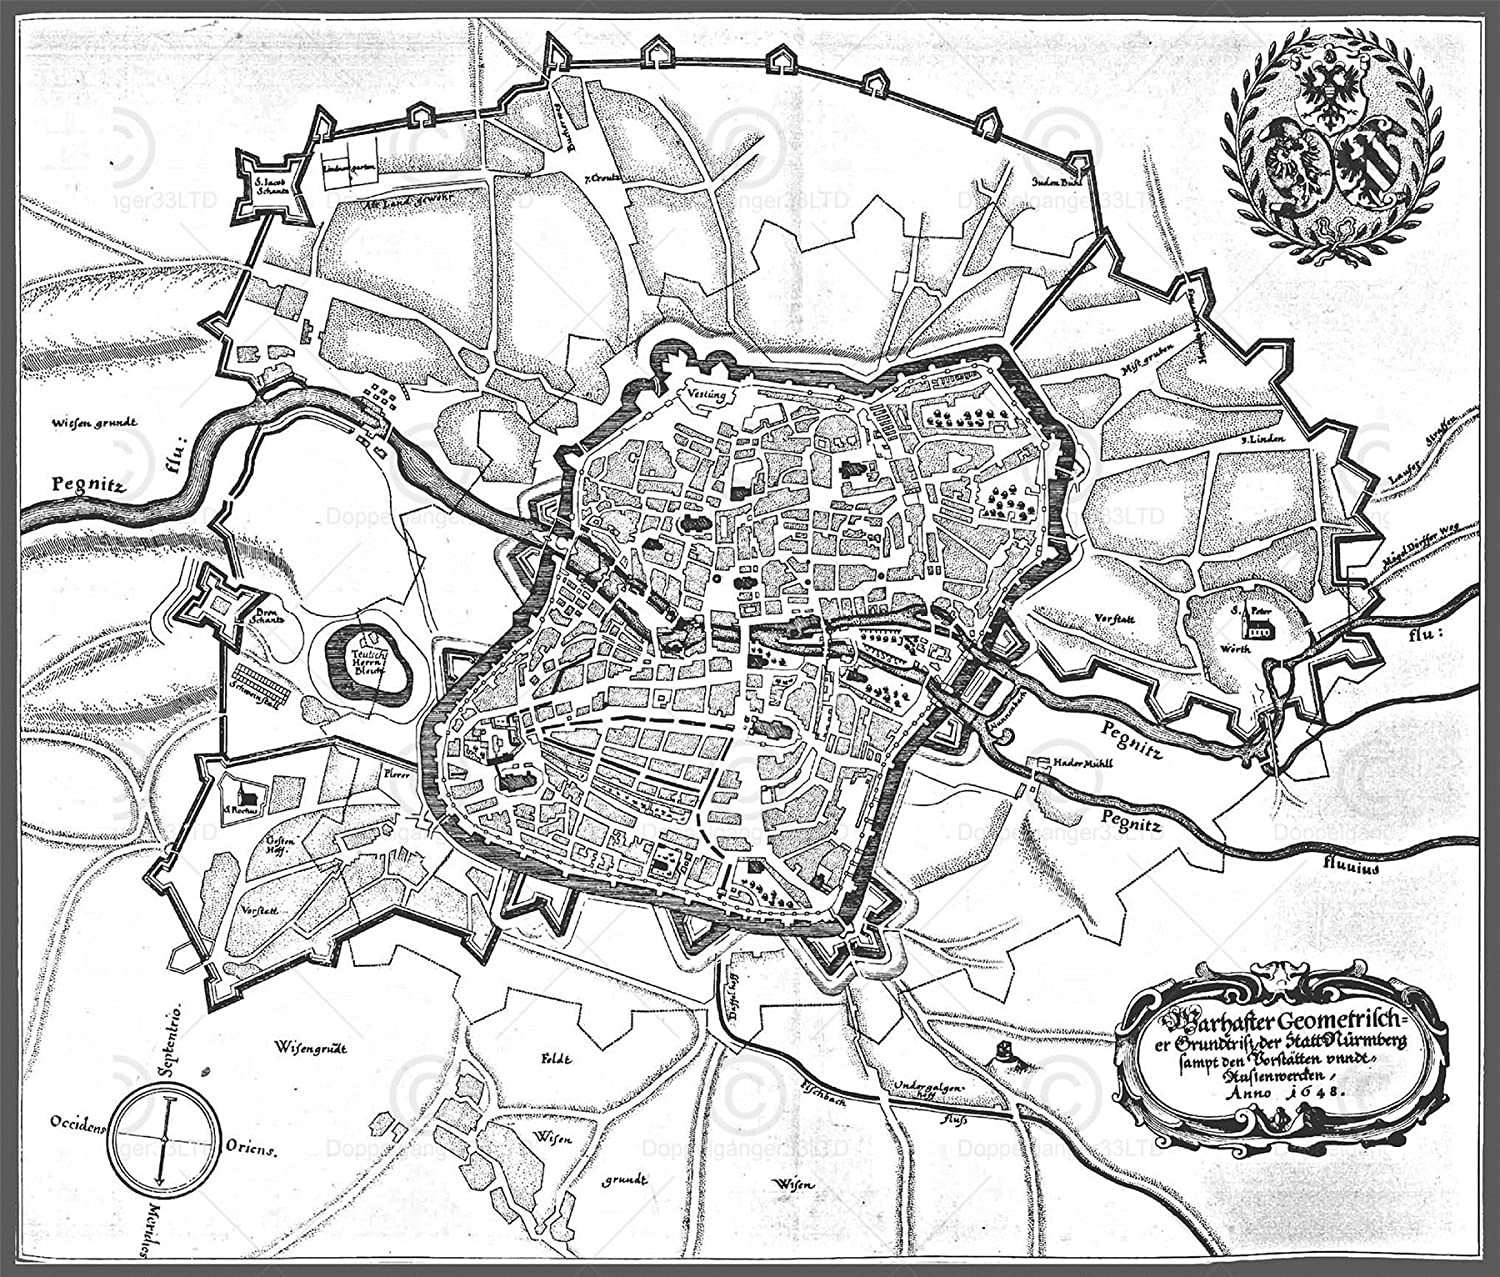 Amazon.com: MAP ANTIQUE MERIAN 1648 NUREMBERG CITY PLAN LARGE ...